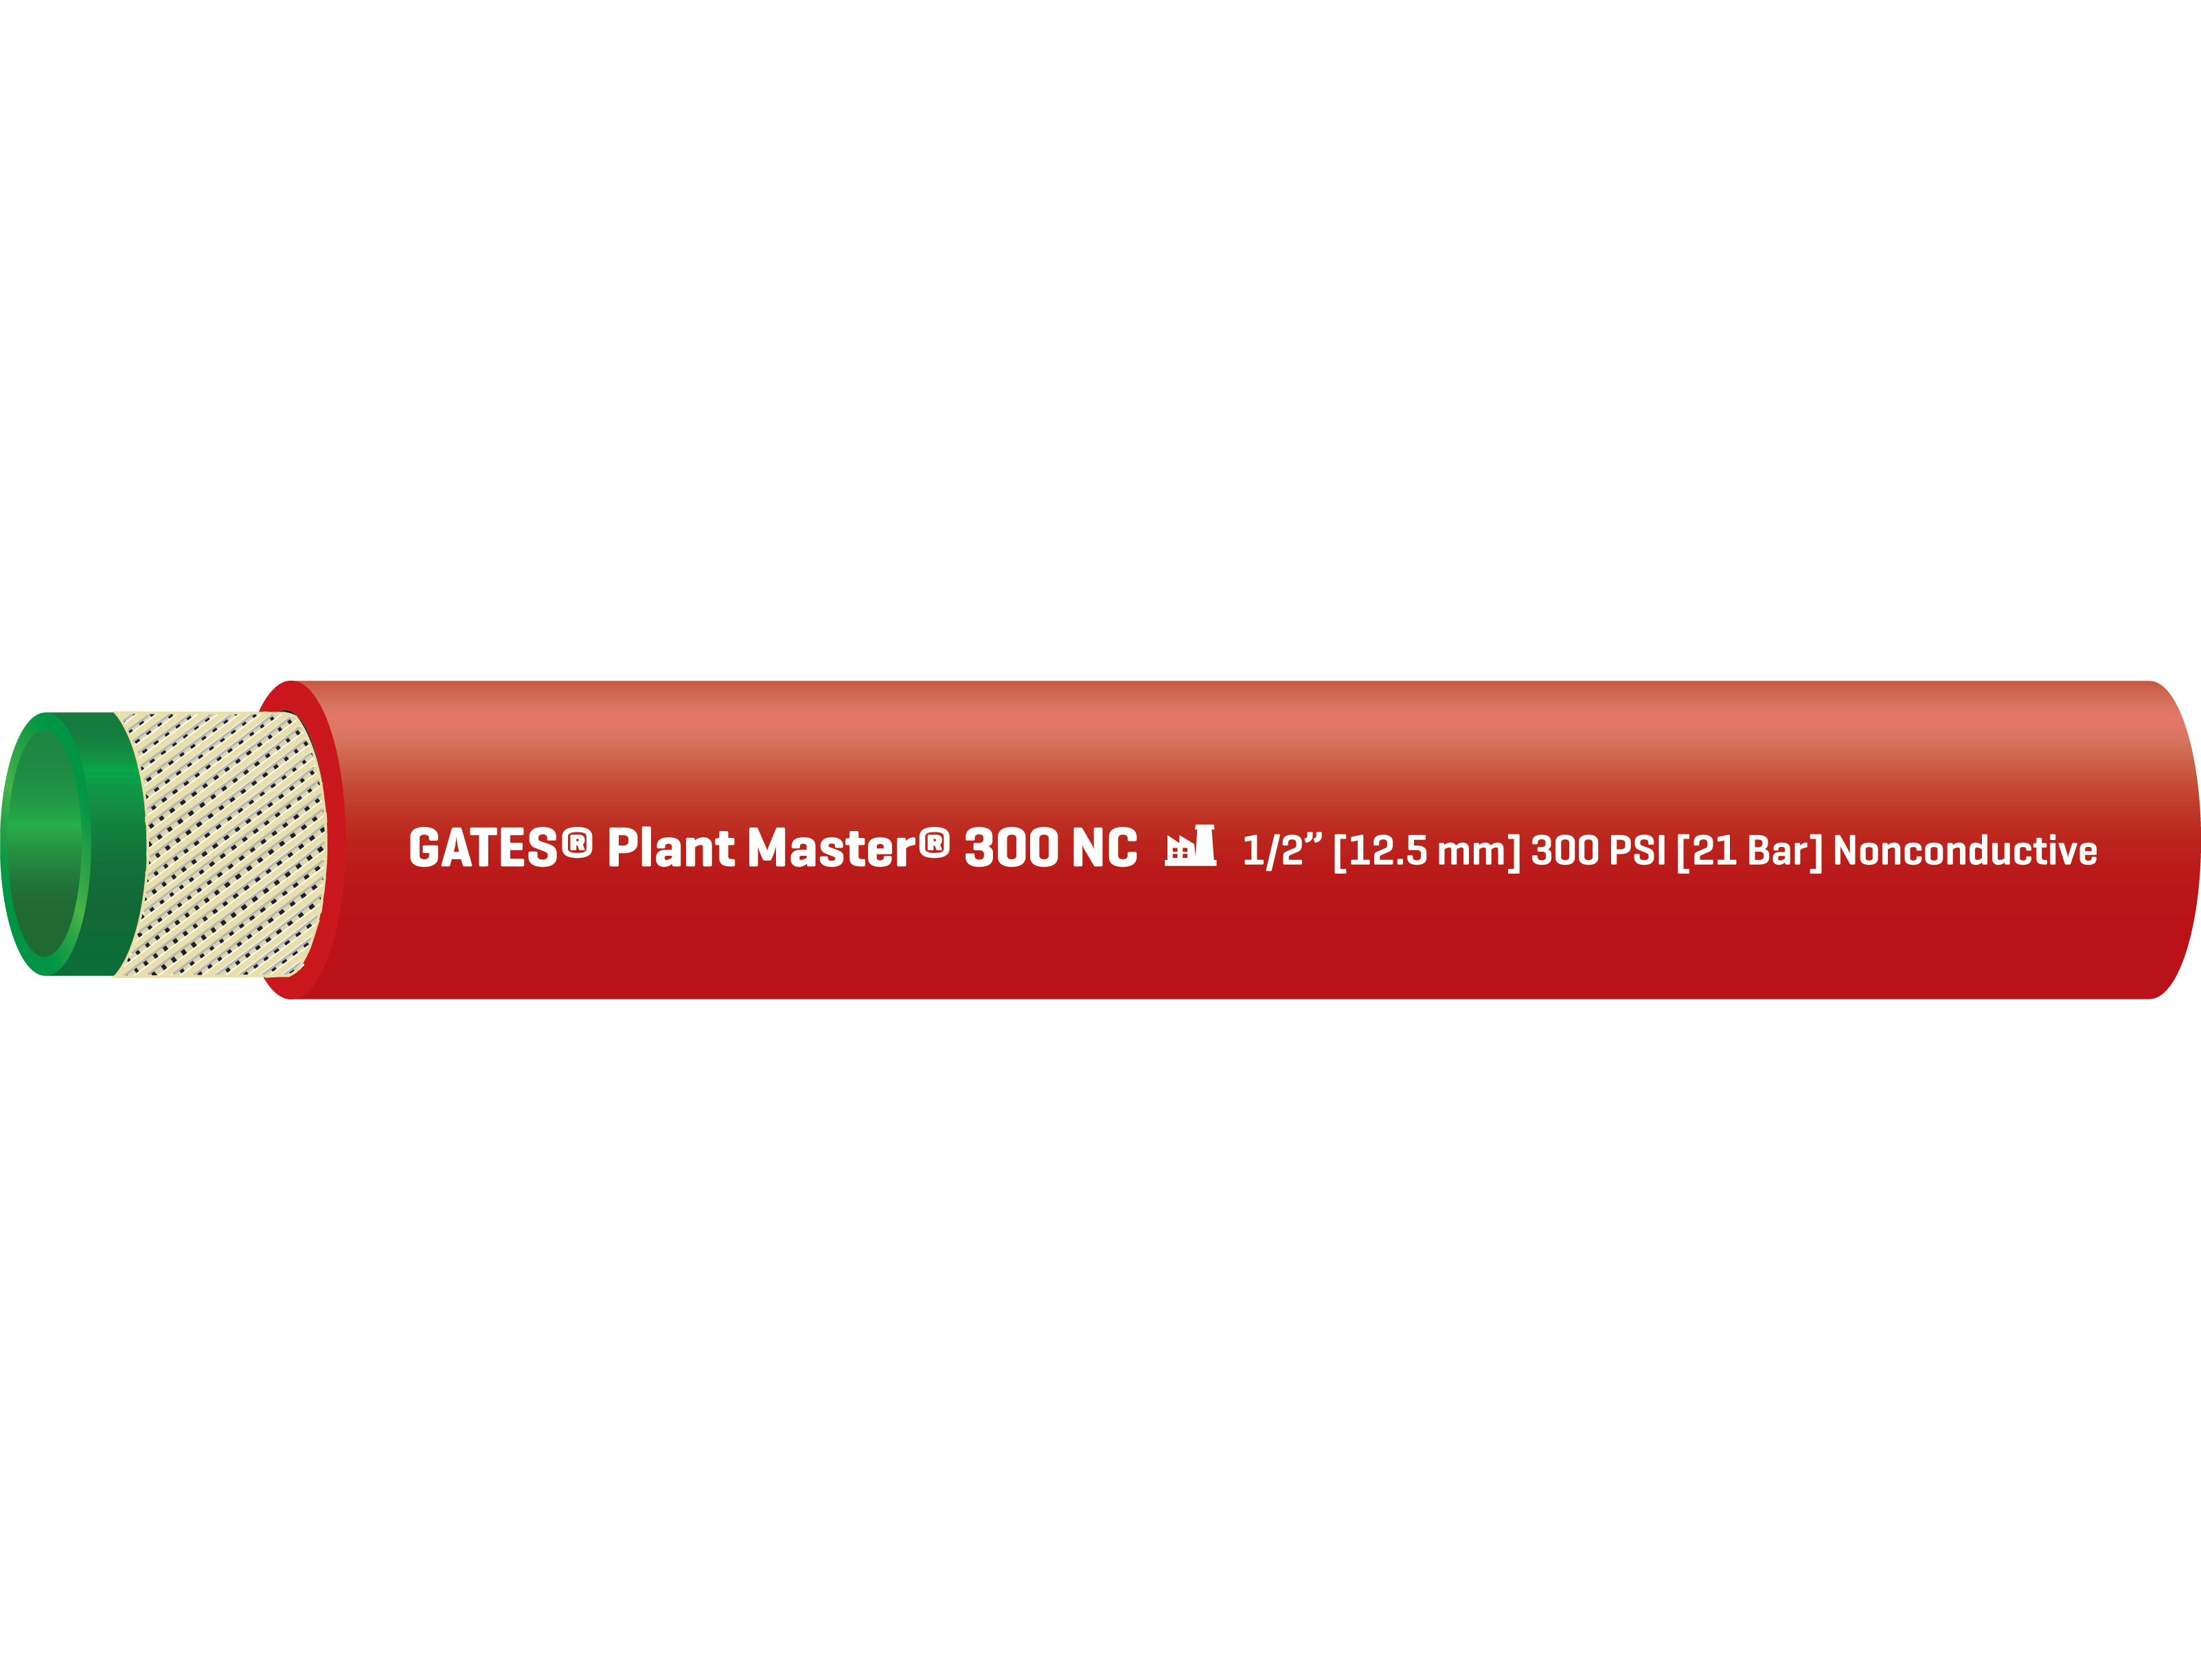 Plant Master 300 NC Hose For Air and Water Applications